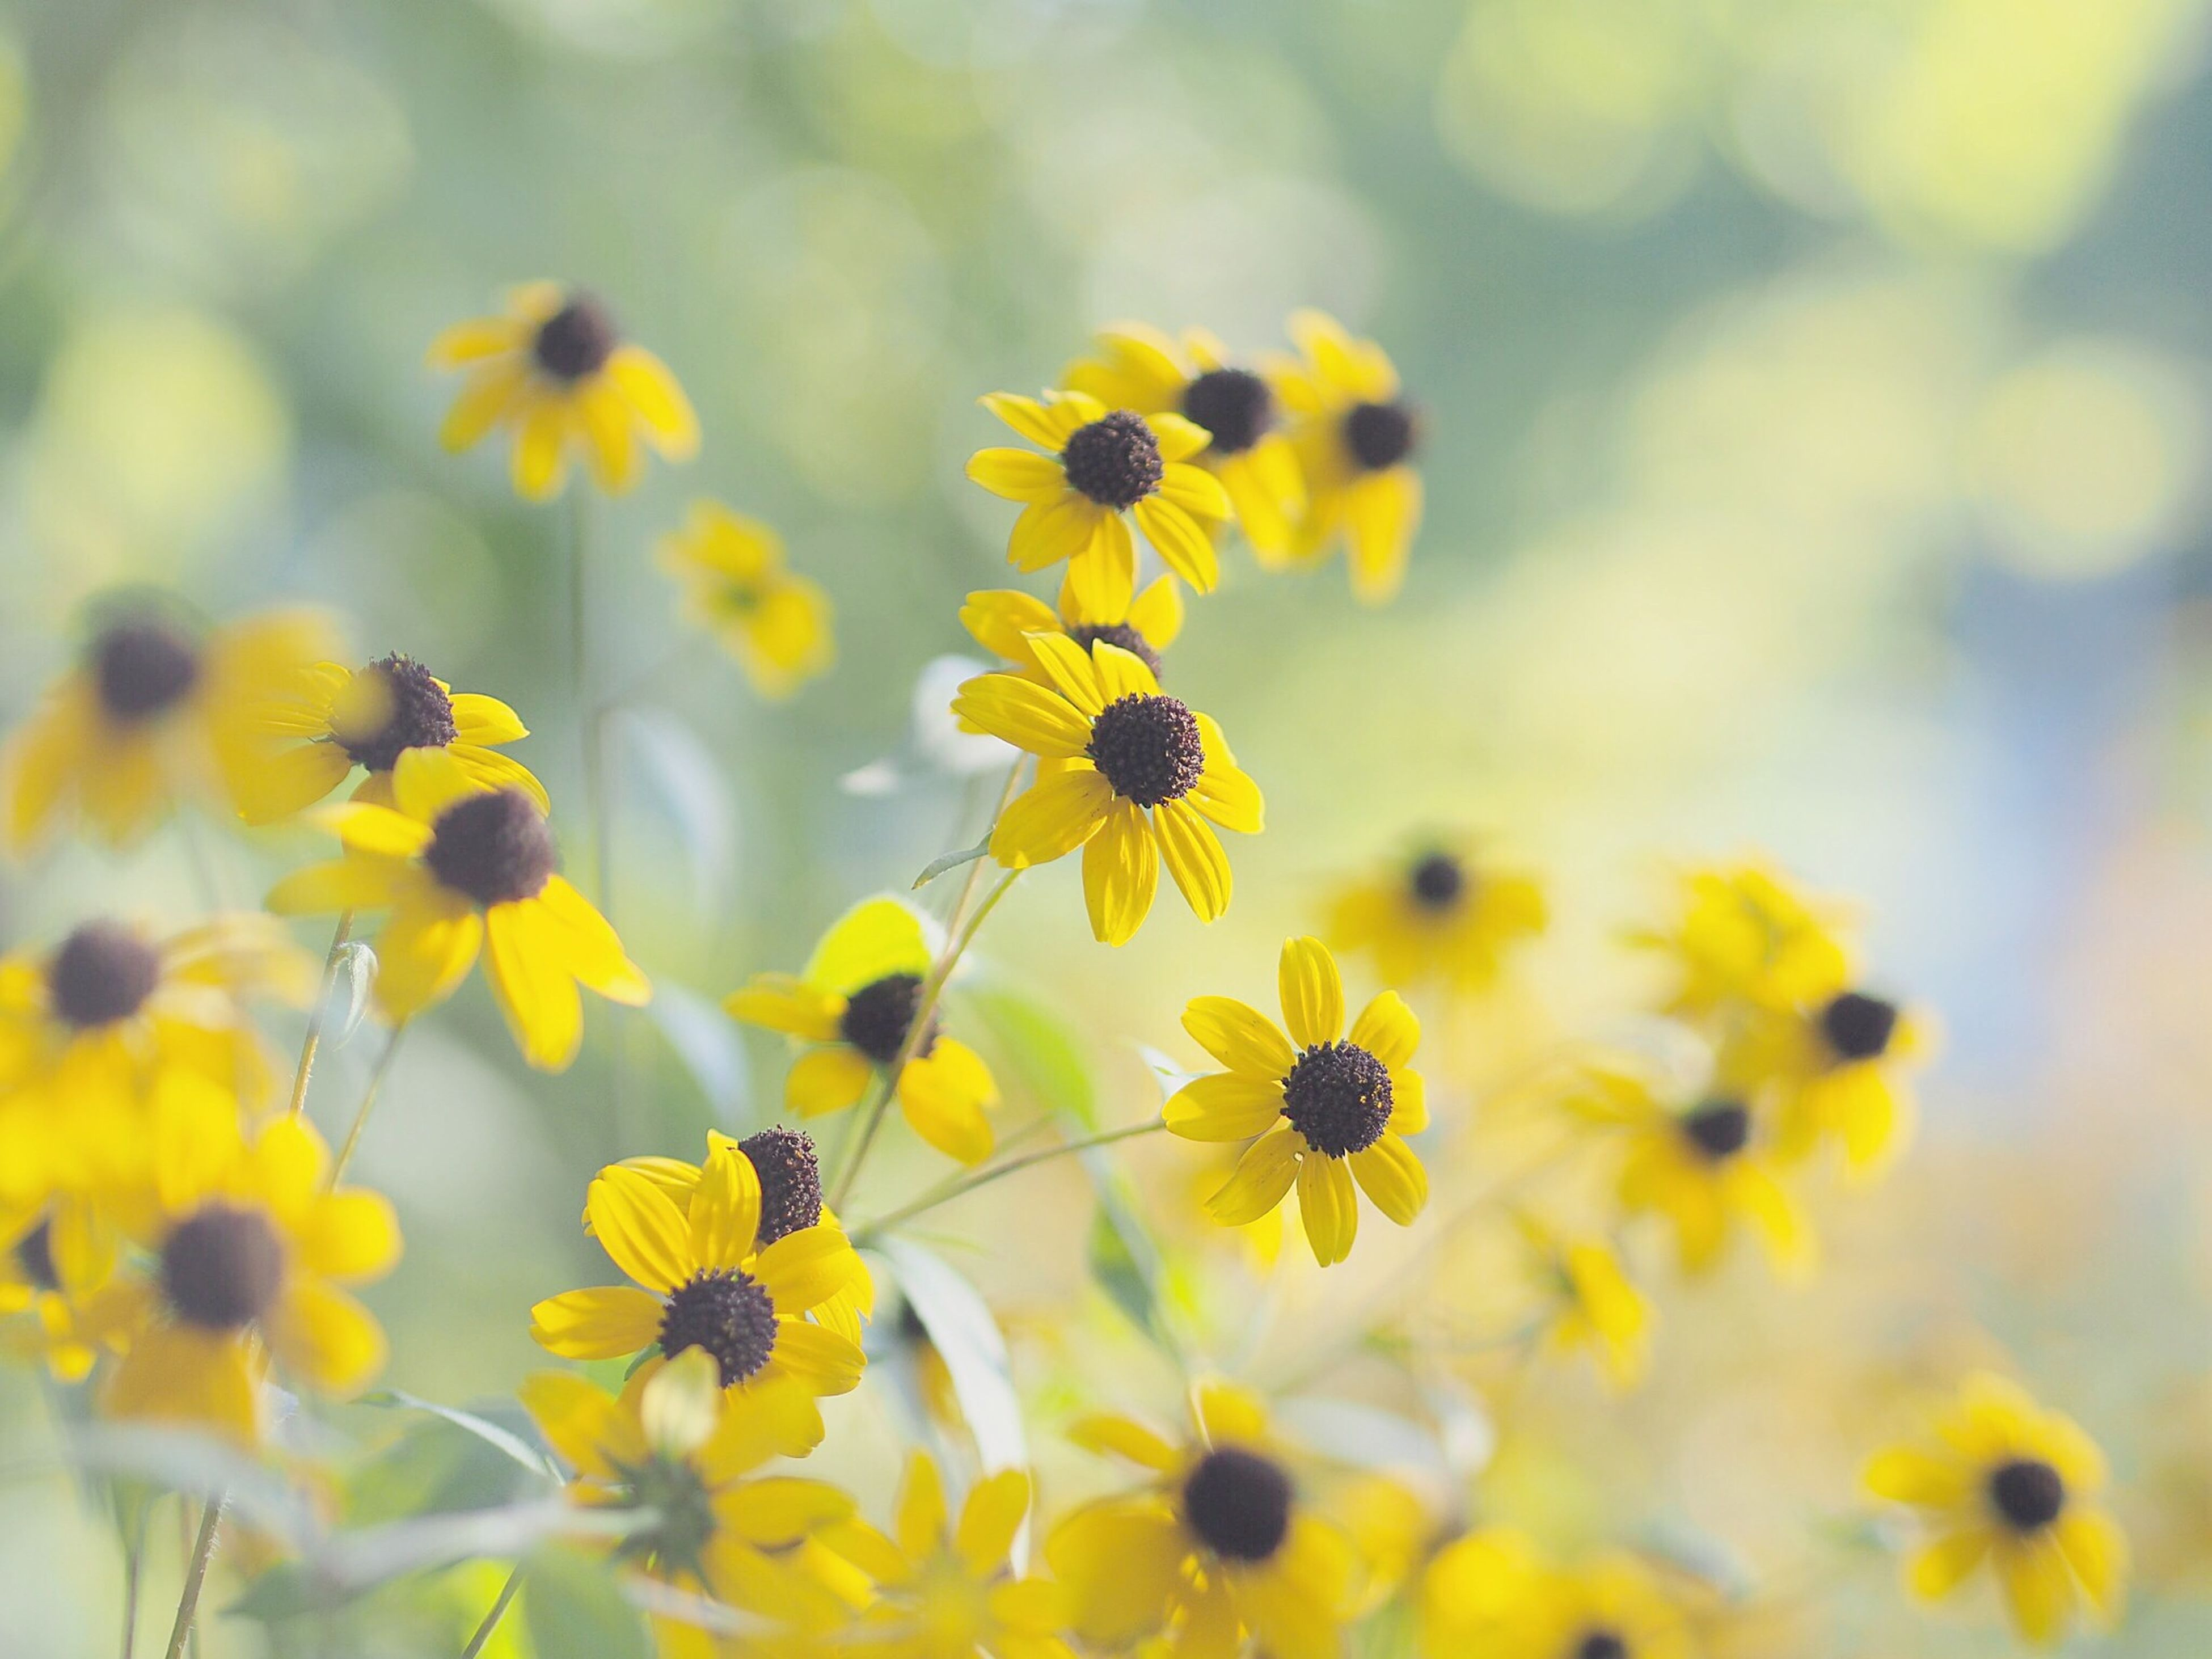 flower, yellow, freshness, growth, fragility, petal, insect, beauty in nature, focus on foreground, nature, plant, flower head, selective focus, close-up, blooming, animal themes, one animal, animals in the wild, in bloom, wildlife